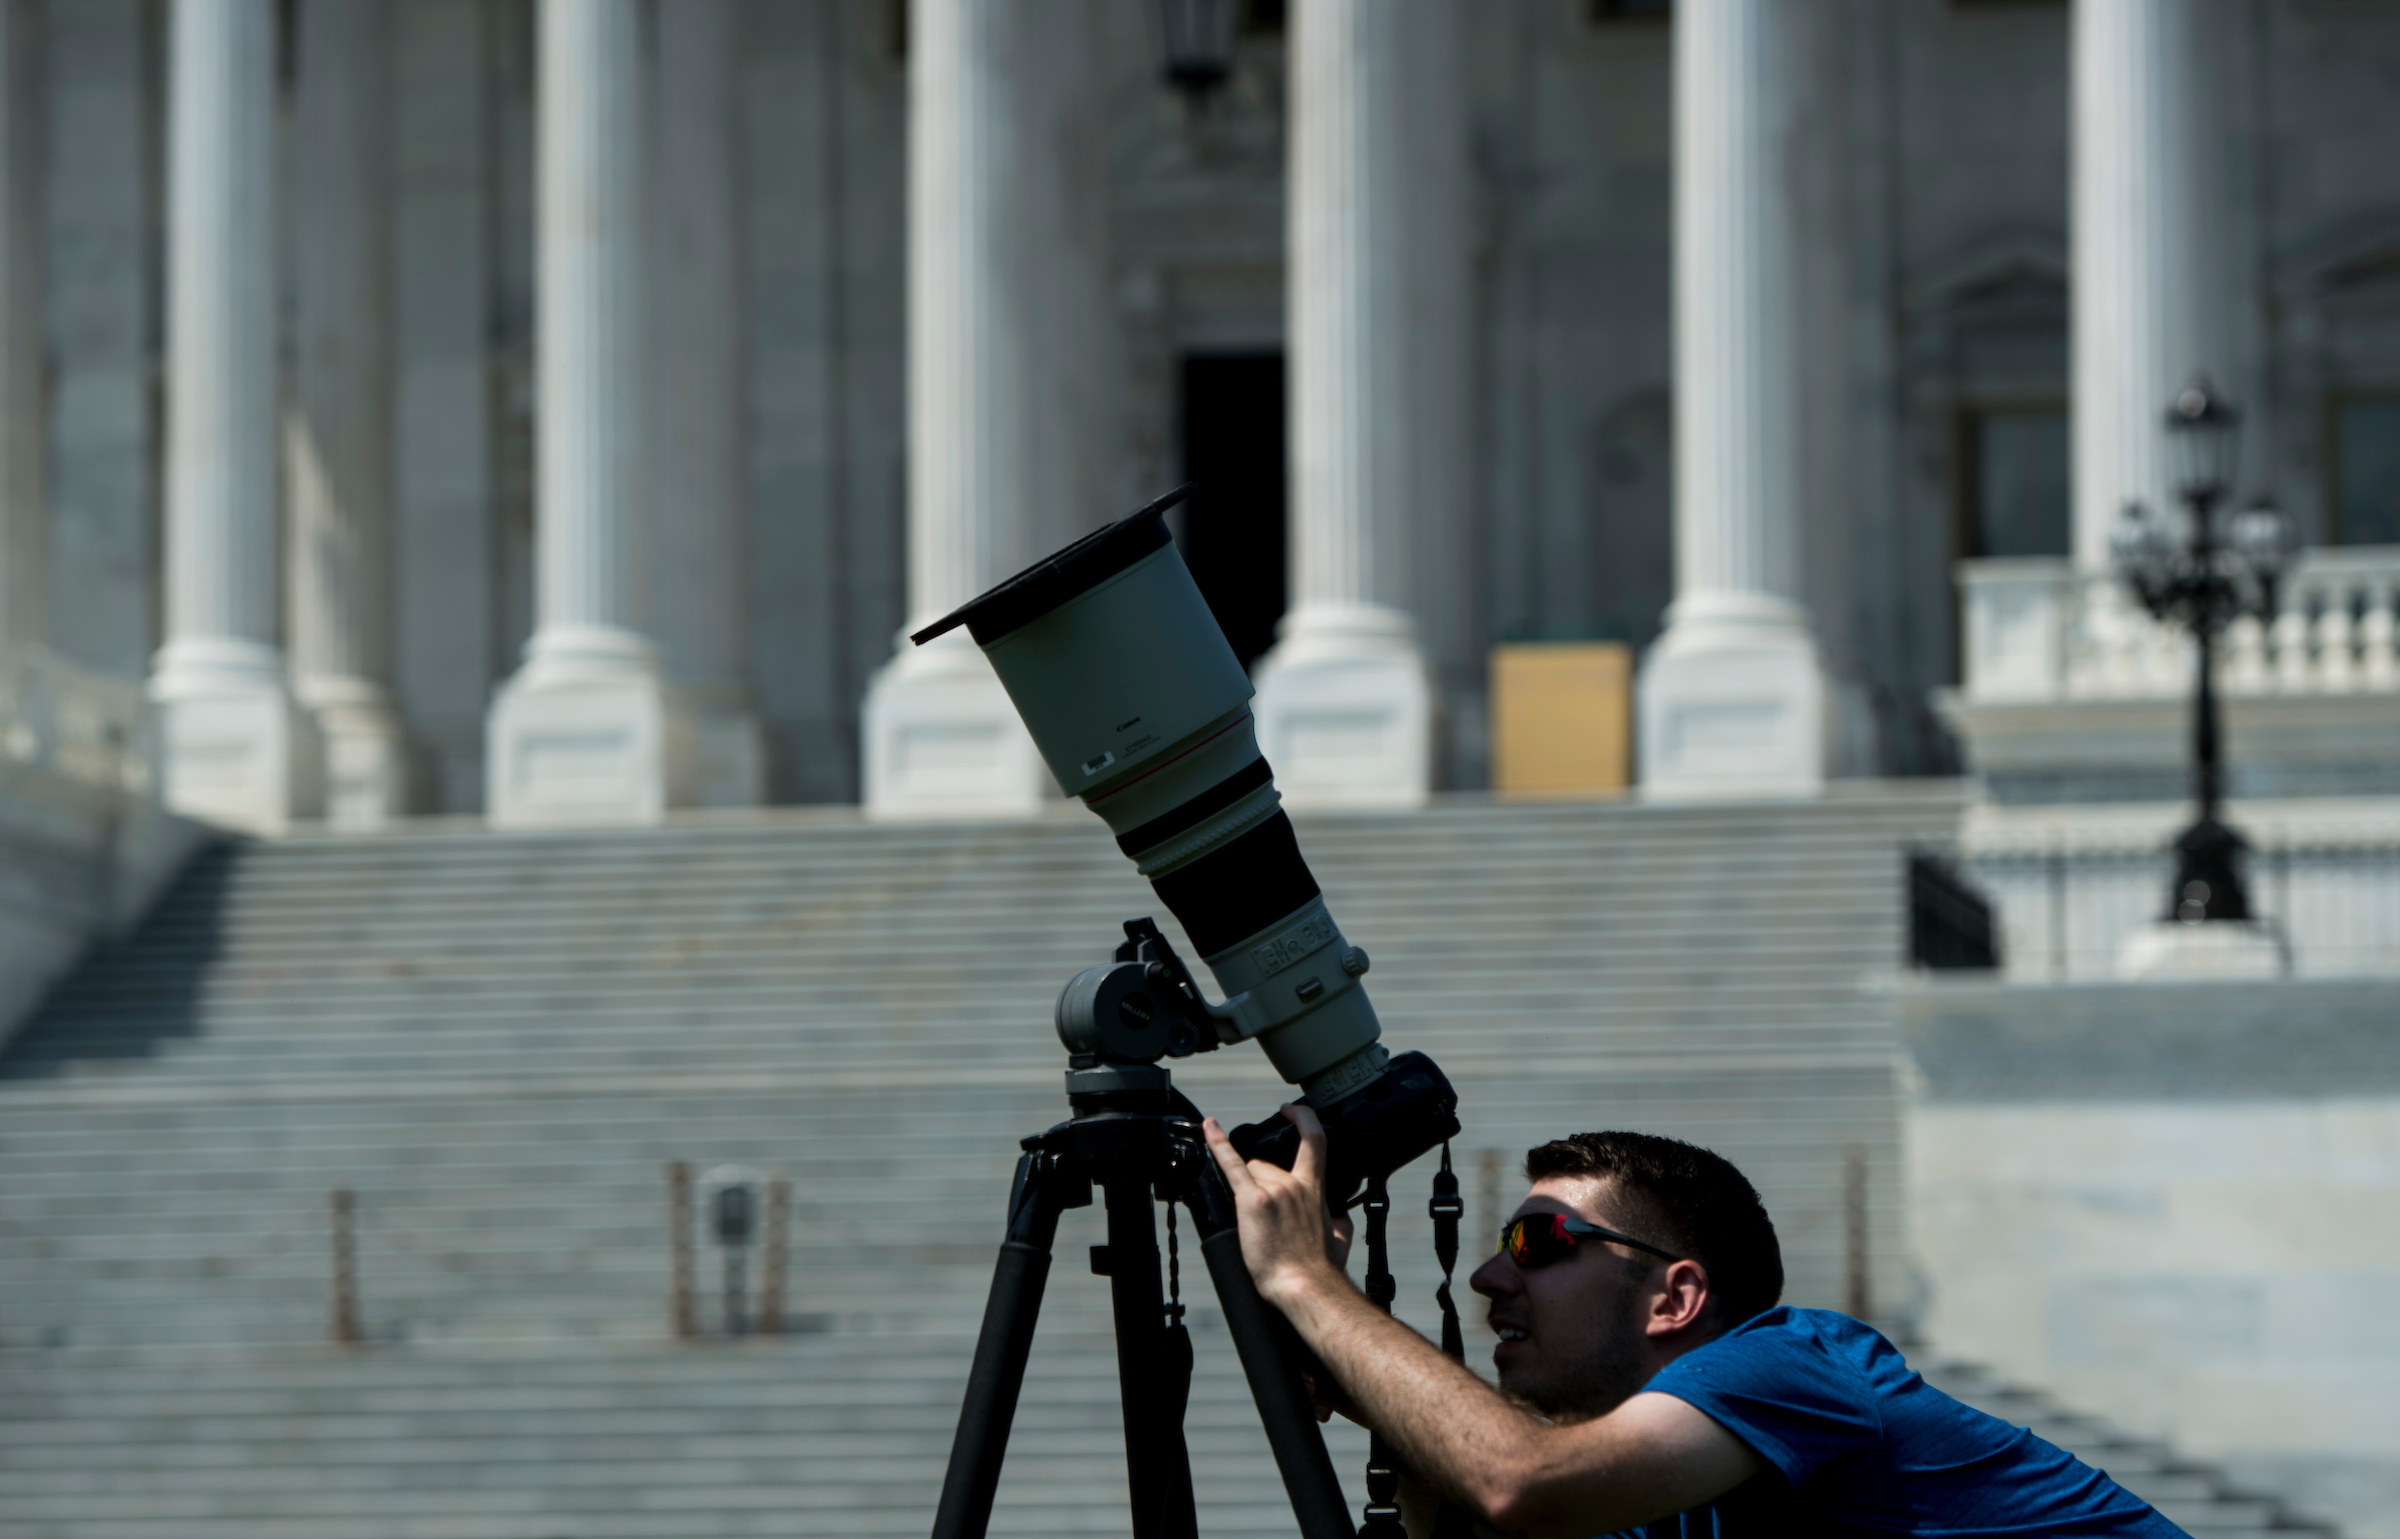 UNITED STATES - AUGUST 21: A news photographer adjusts his telephoto lens equipped with a filter in front of the U.S. Capitol on Monday, Aug. 21, 2017, in preparation for today's solar eclipse. (Photo By Bill Clark/CQ Roll Call)